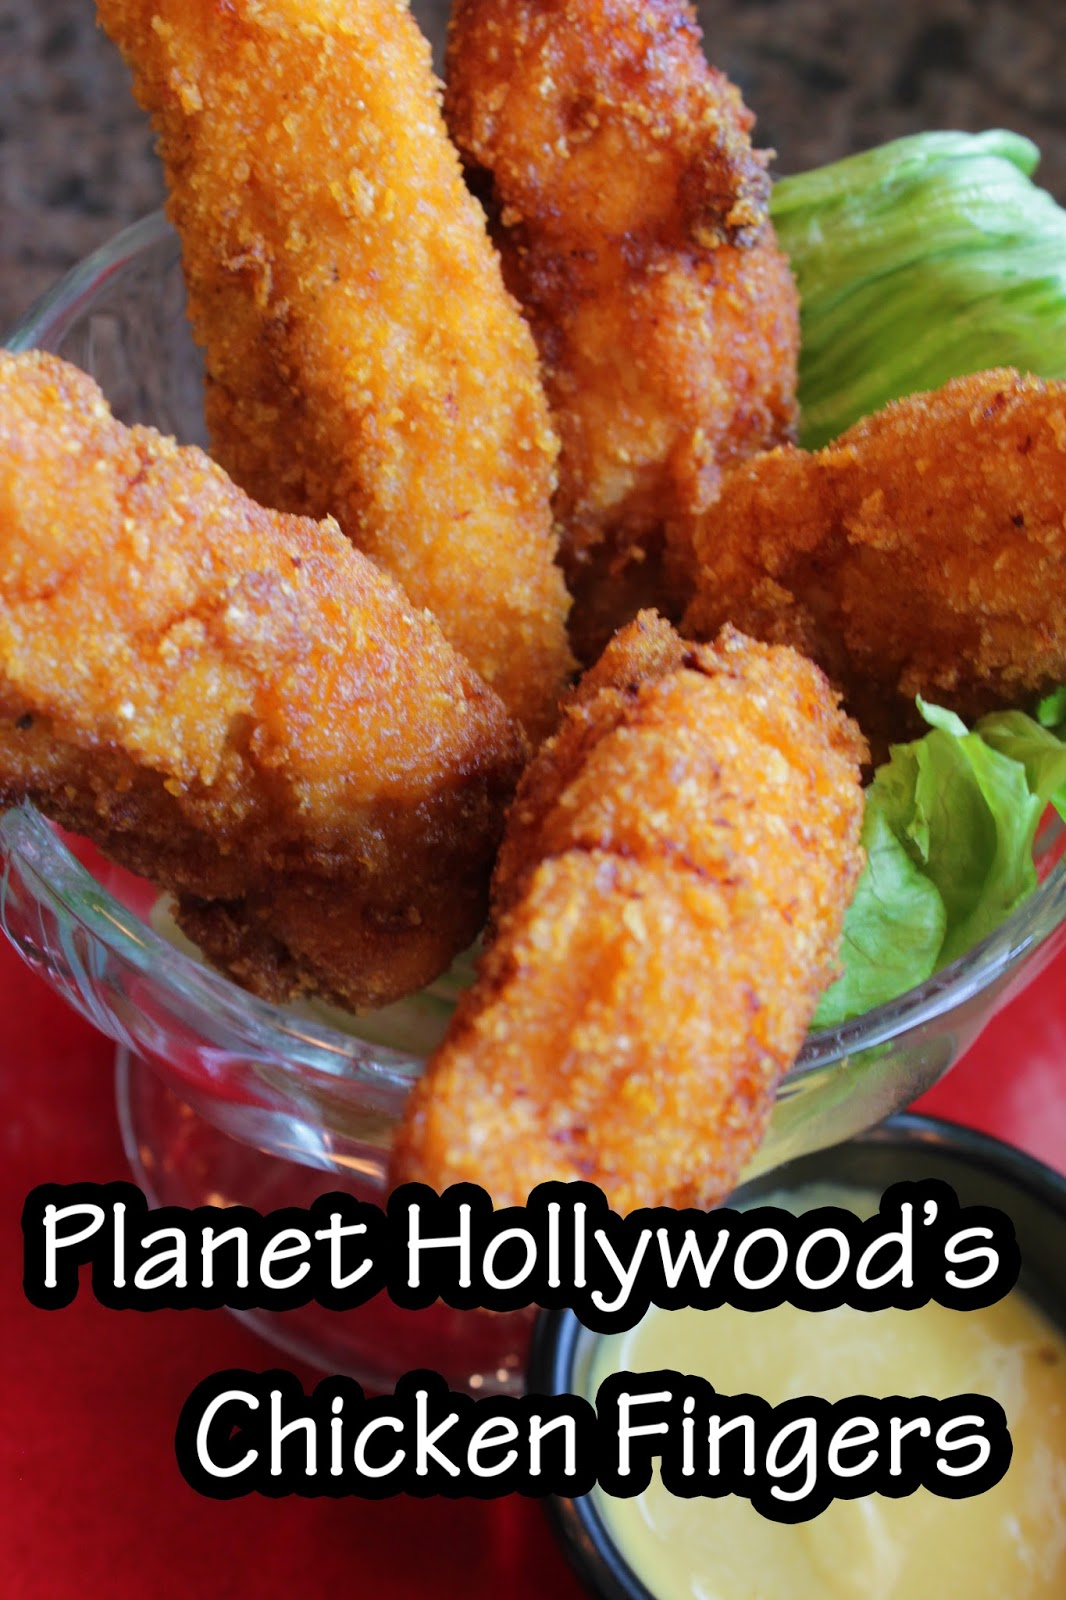 Chicken Fingers Recipe from Planet Hollywood (Downtown Disney)